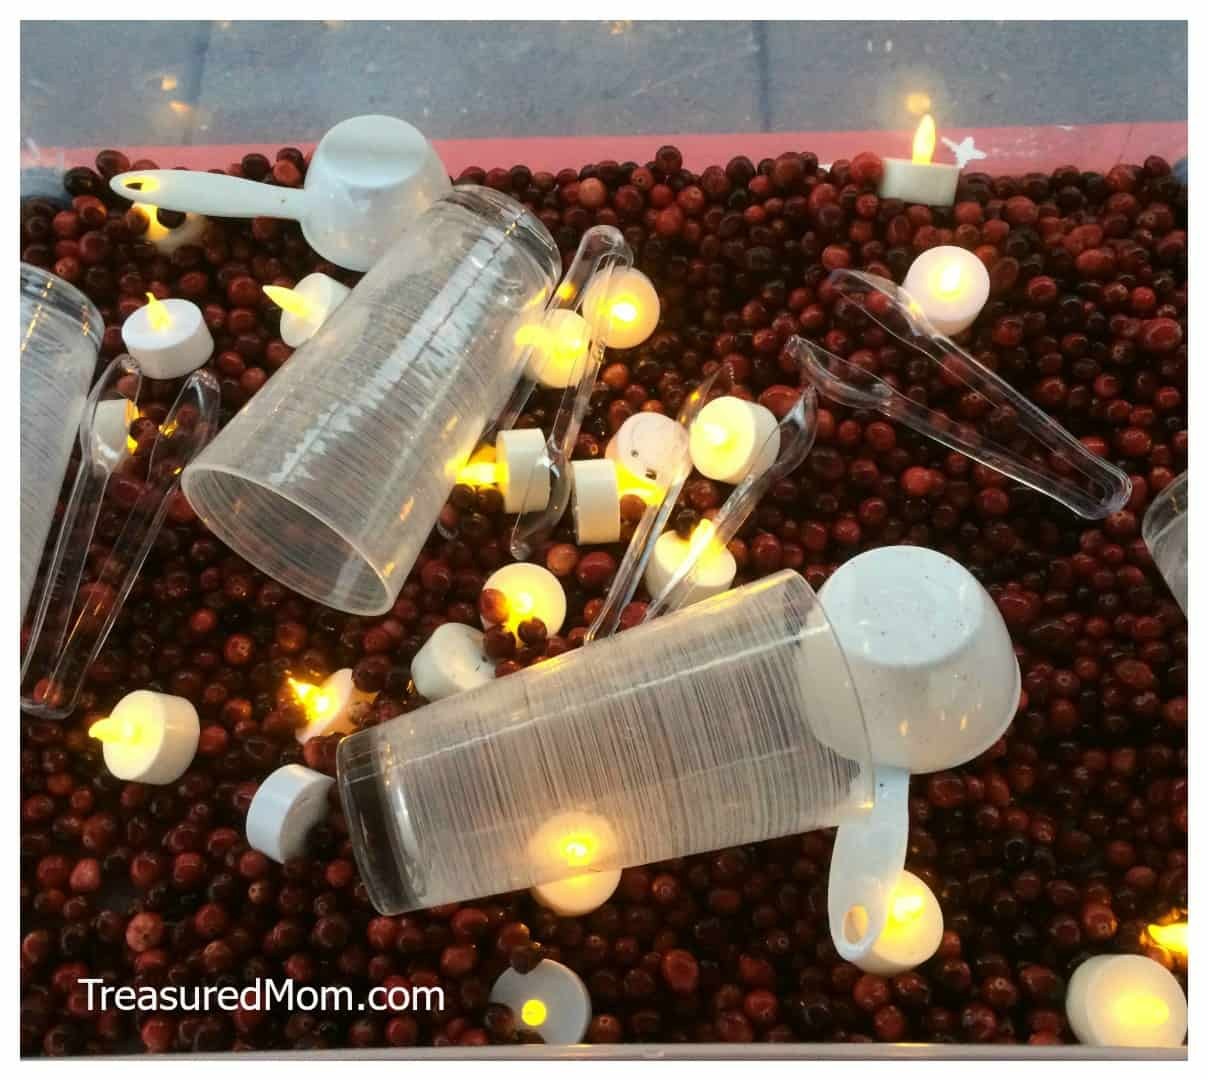 These Sensory Tables will provide tons of fun for kids of all ages and are a great addition to your holiday party.